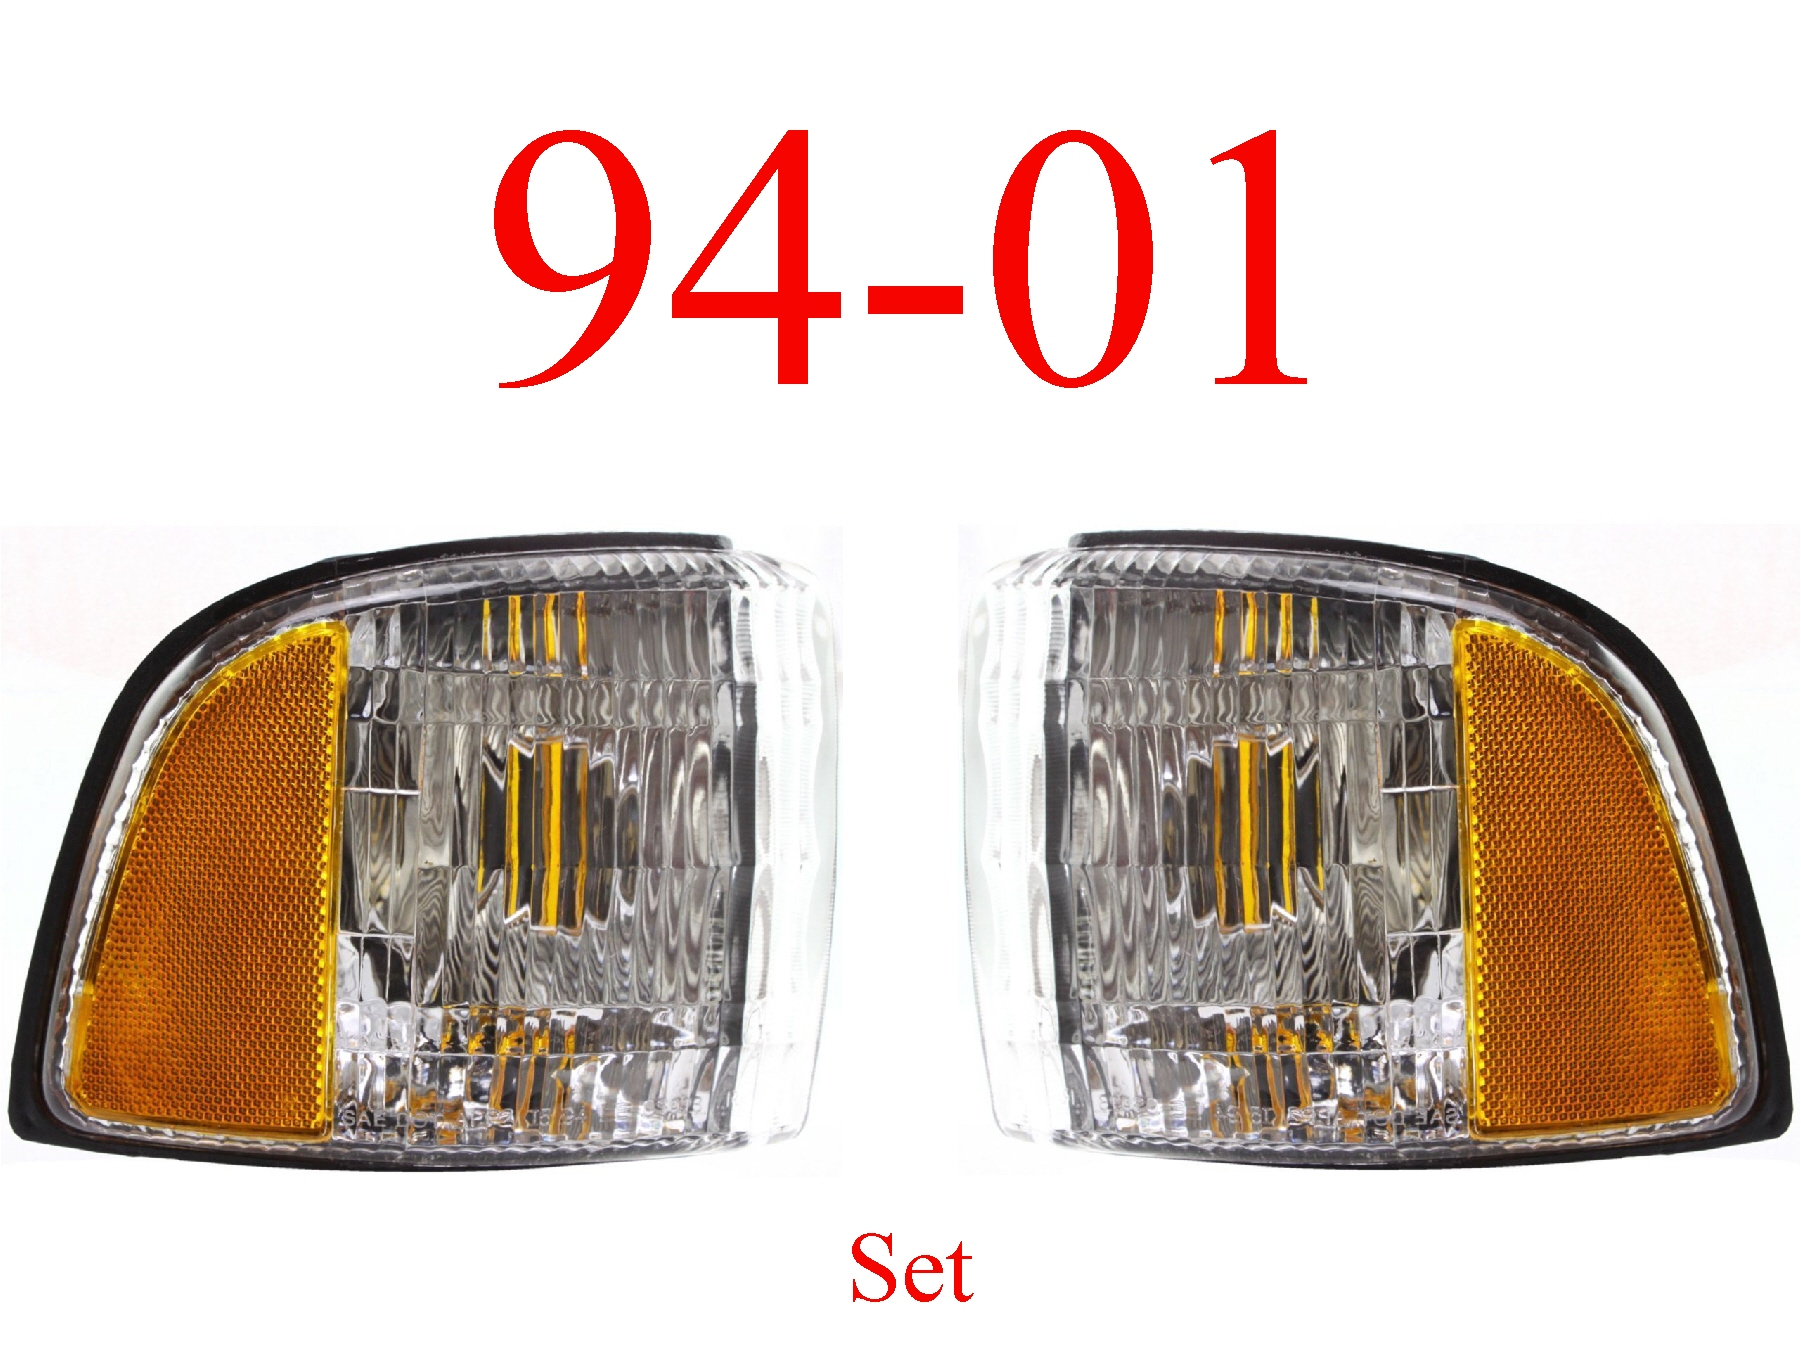 94-01 Dodge Ram Side Parking Light Set